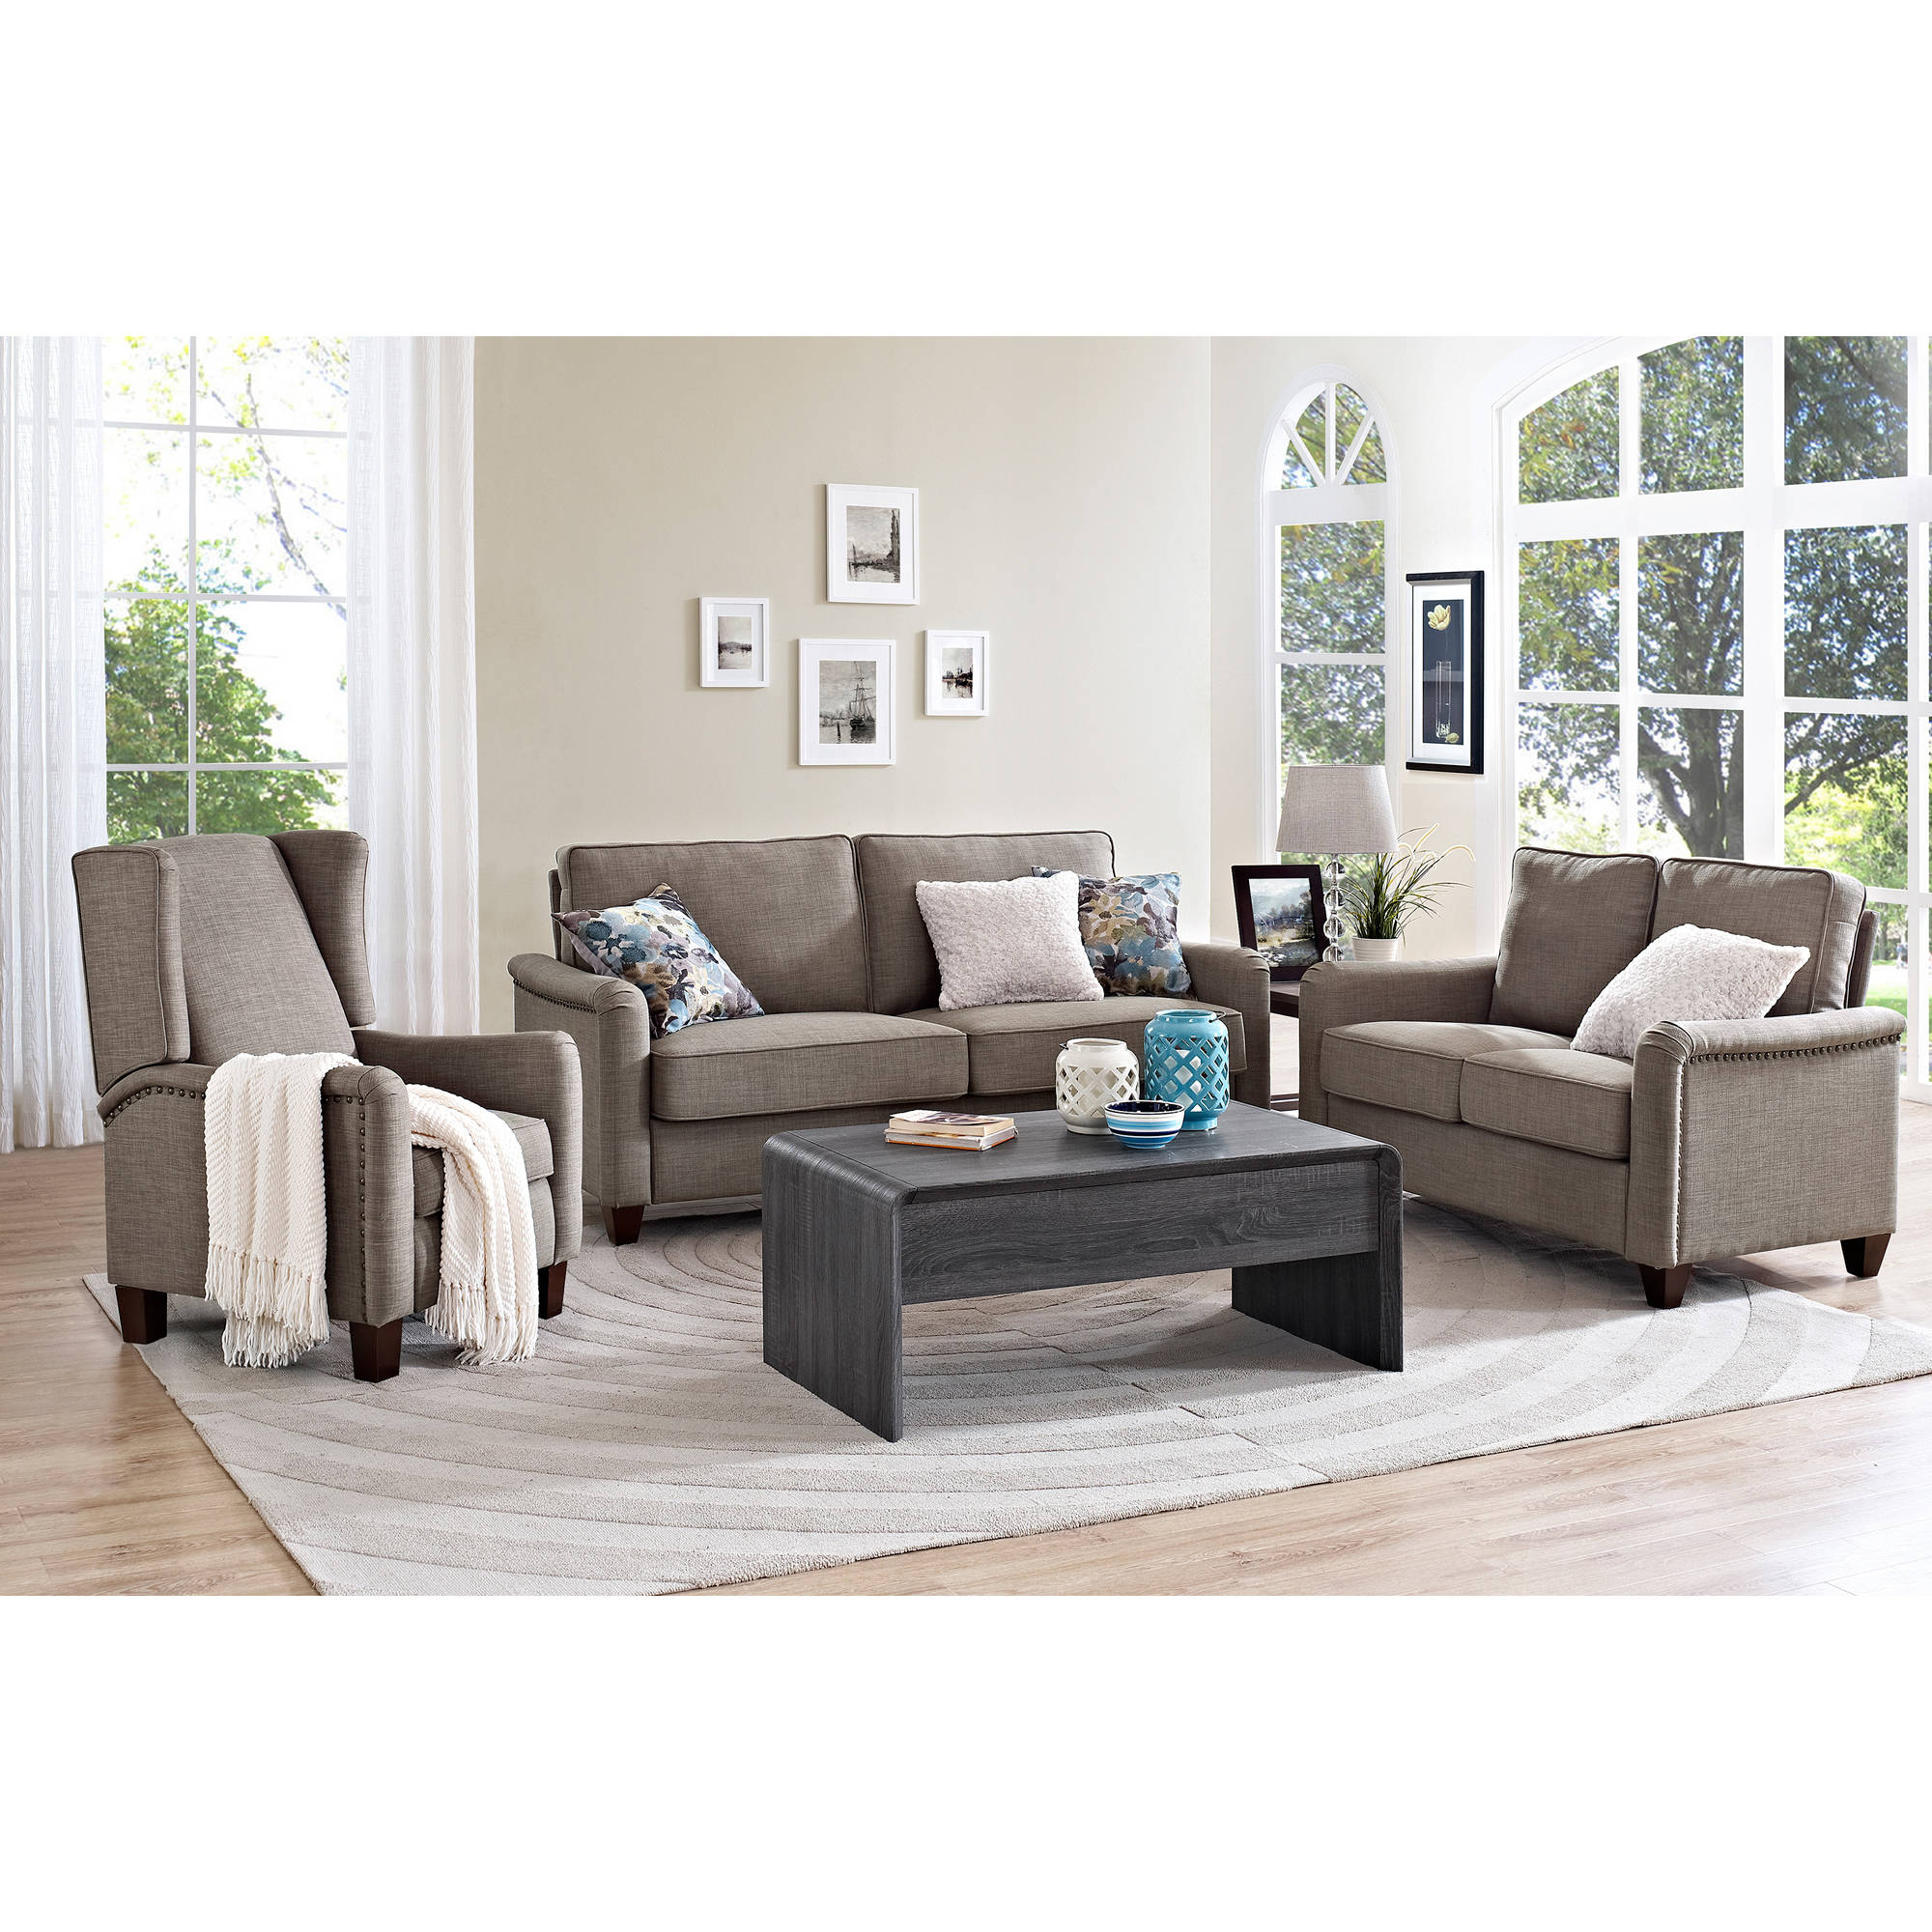 Better Homes and Gardens Grayson Loveseat with Nailheads Grey